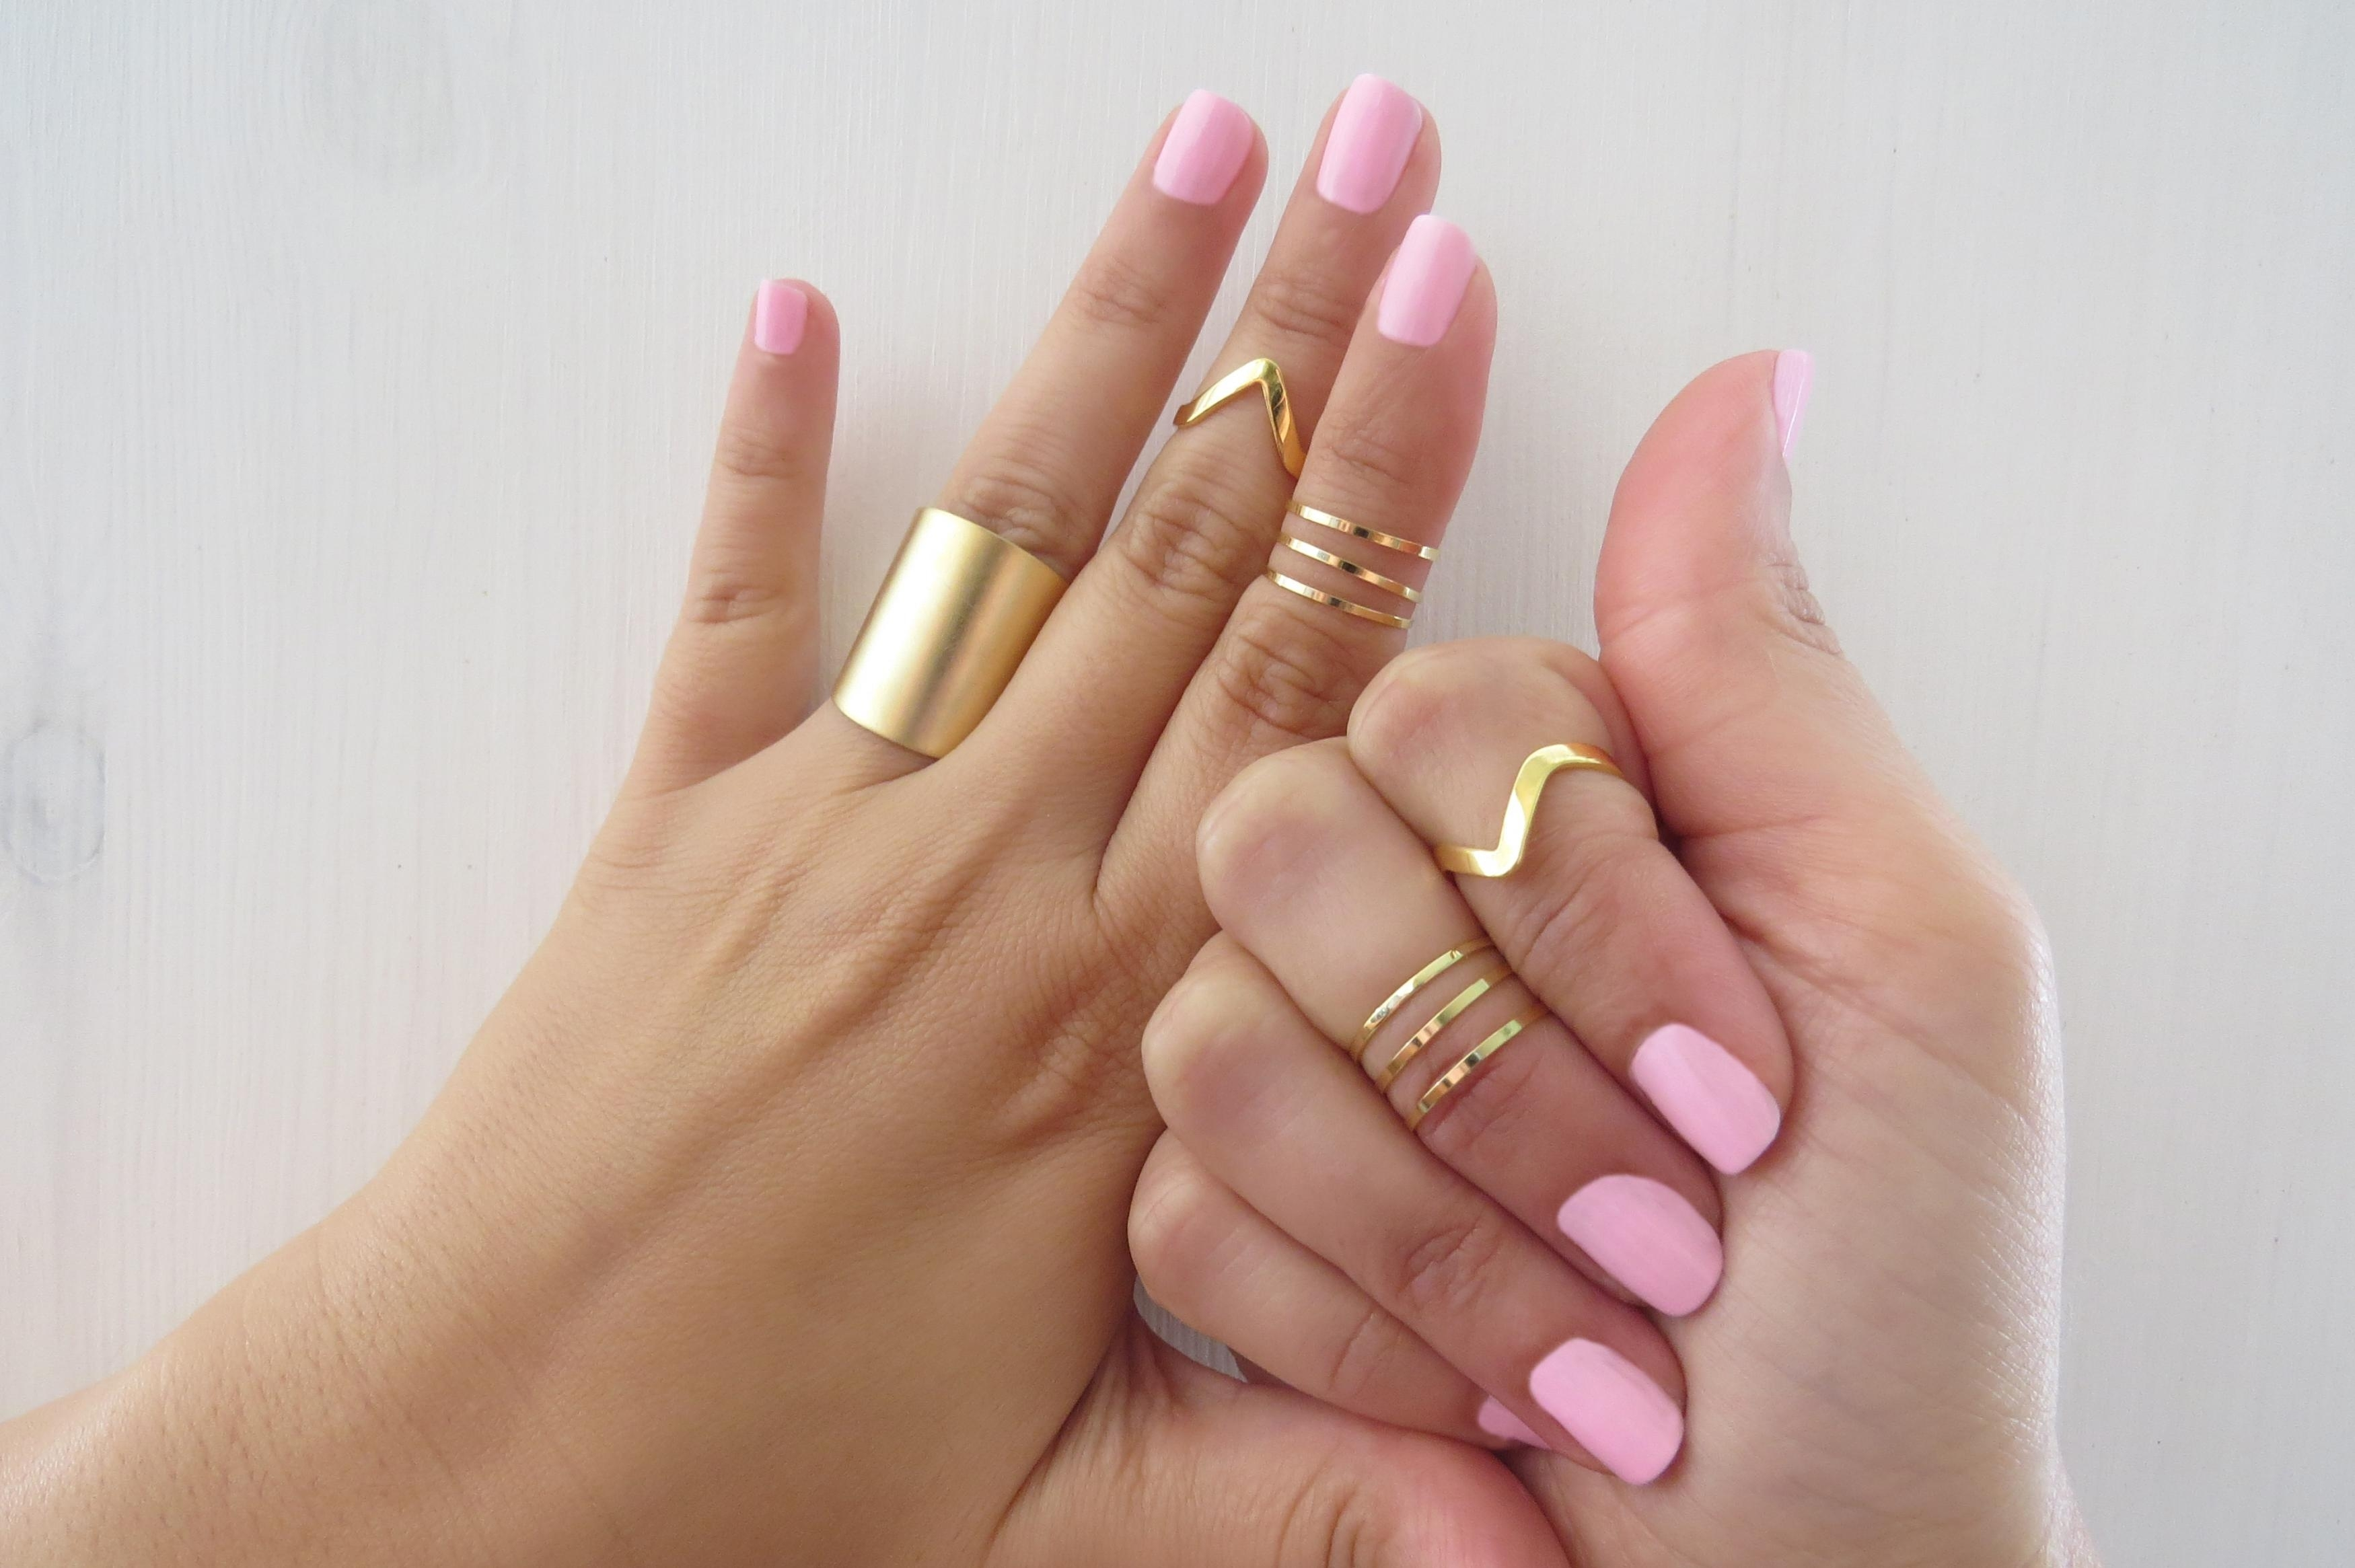 Set Of 9 Gold Stacking Rings, Gold Knuckle Ring, Band Ring With 2018 Chevron Midi Rings Sets (View 11 of 15)